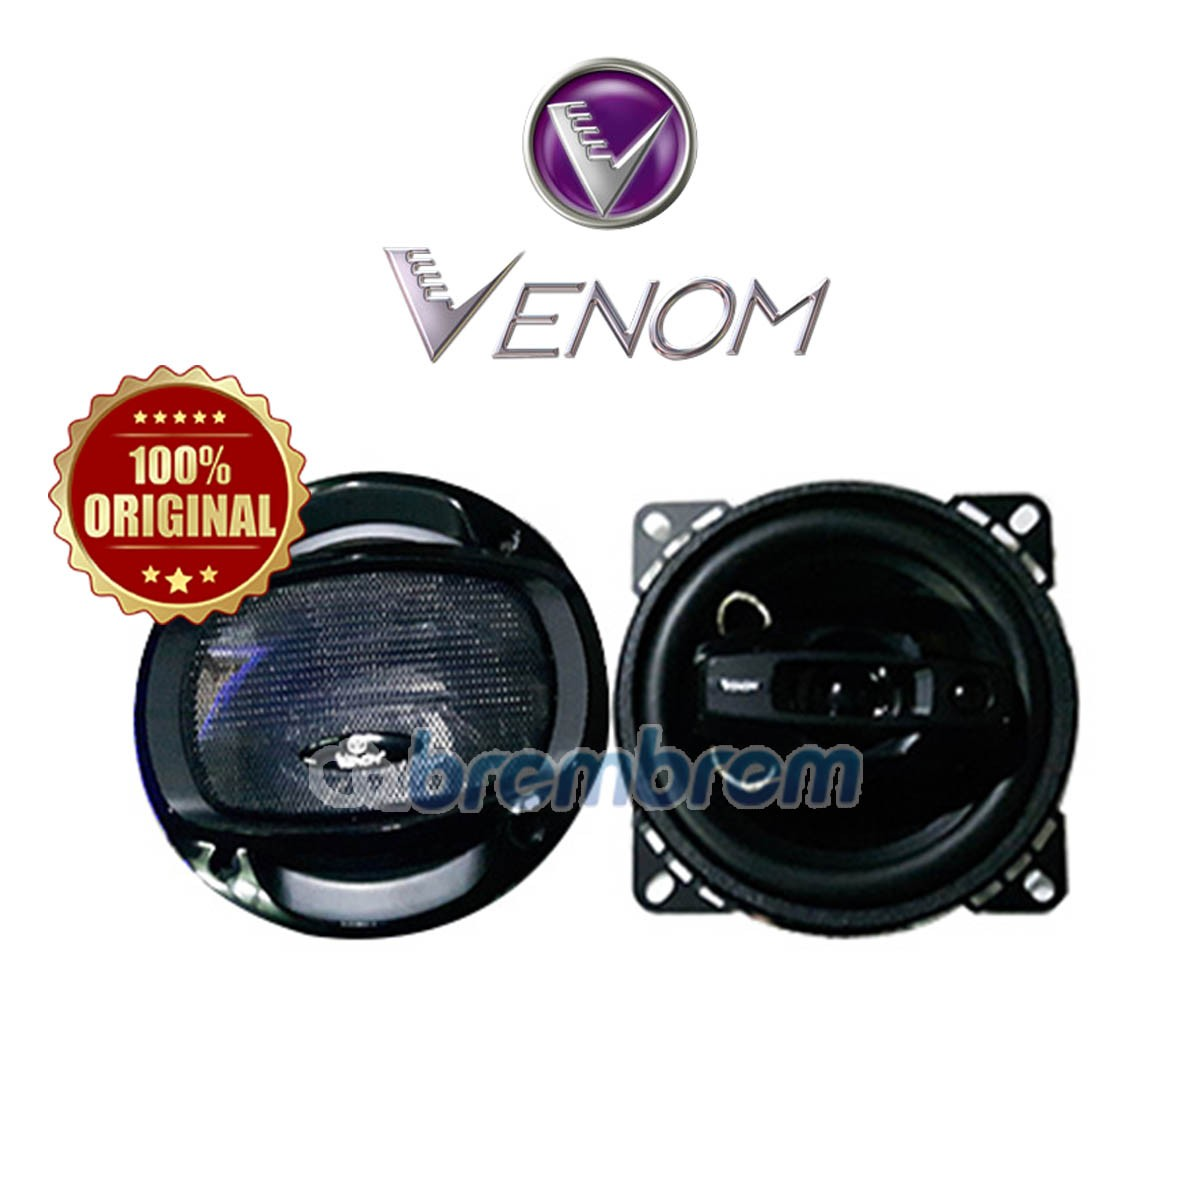 VENOM TURBO SERIES VX403TO - SPEAKER COAXIAL